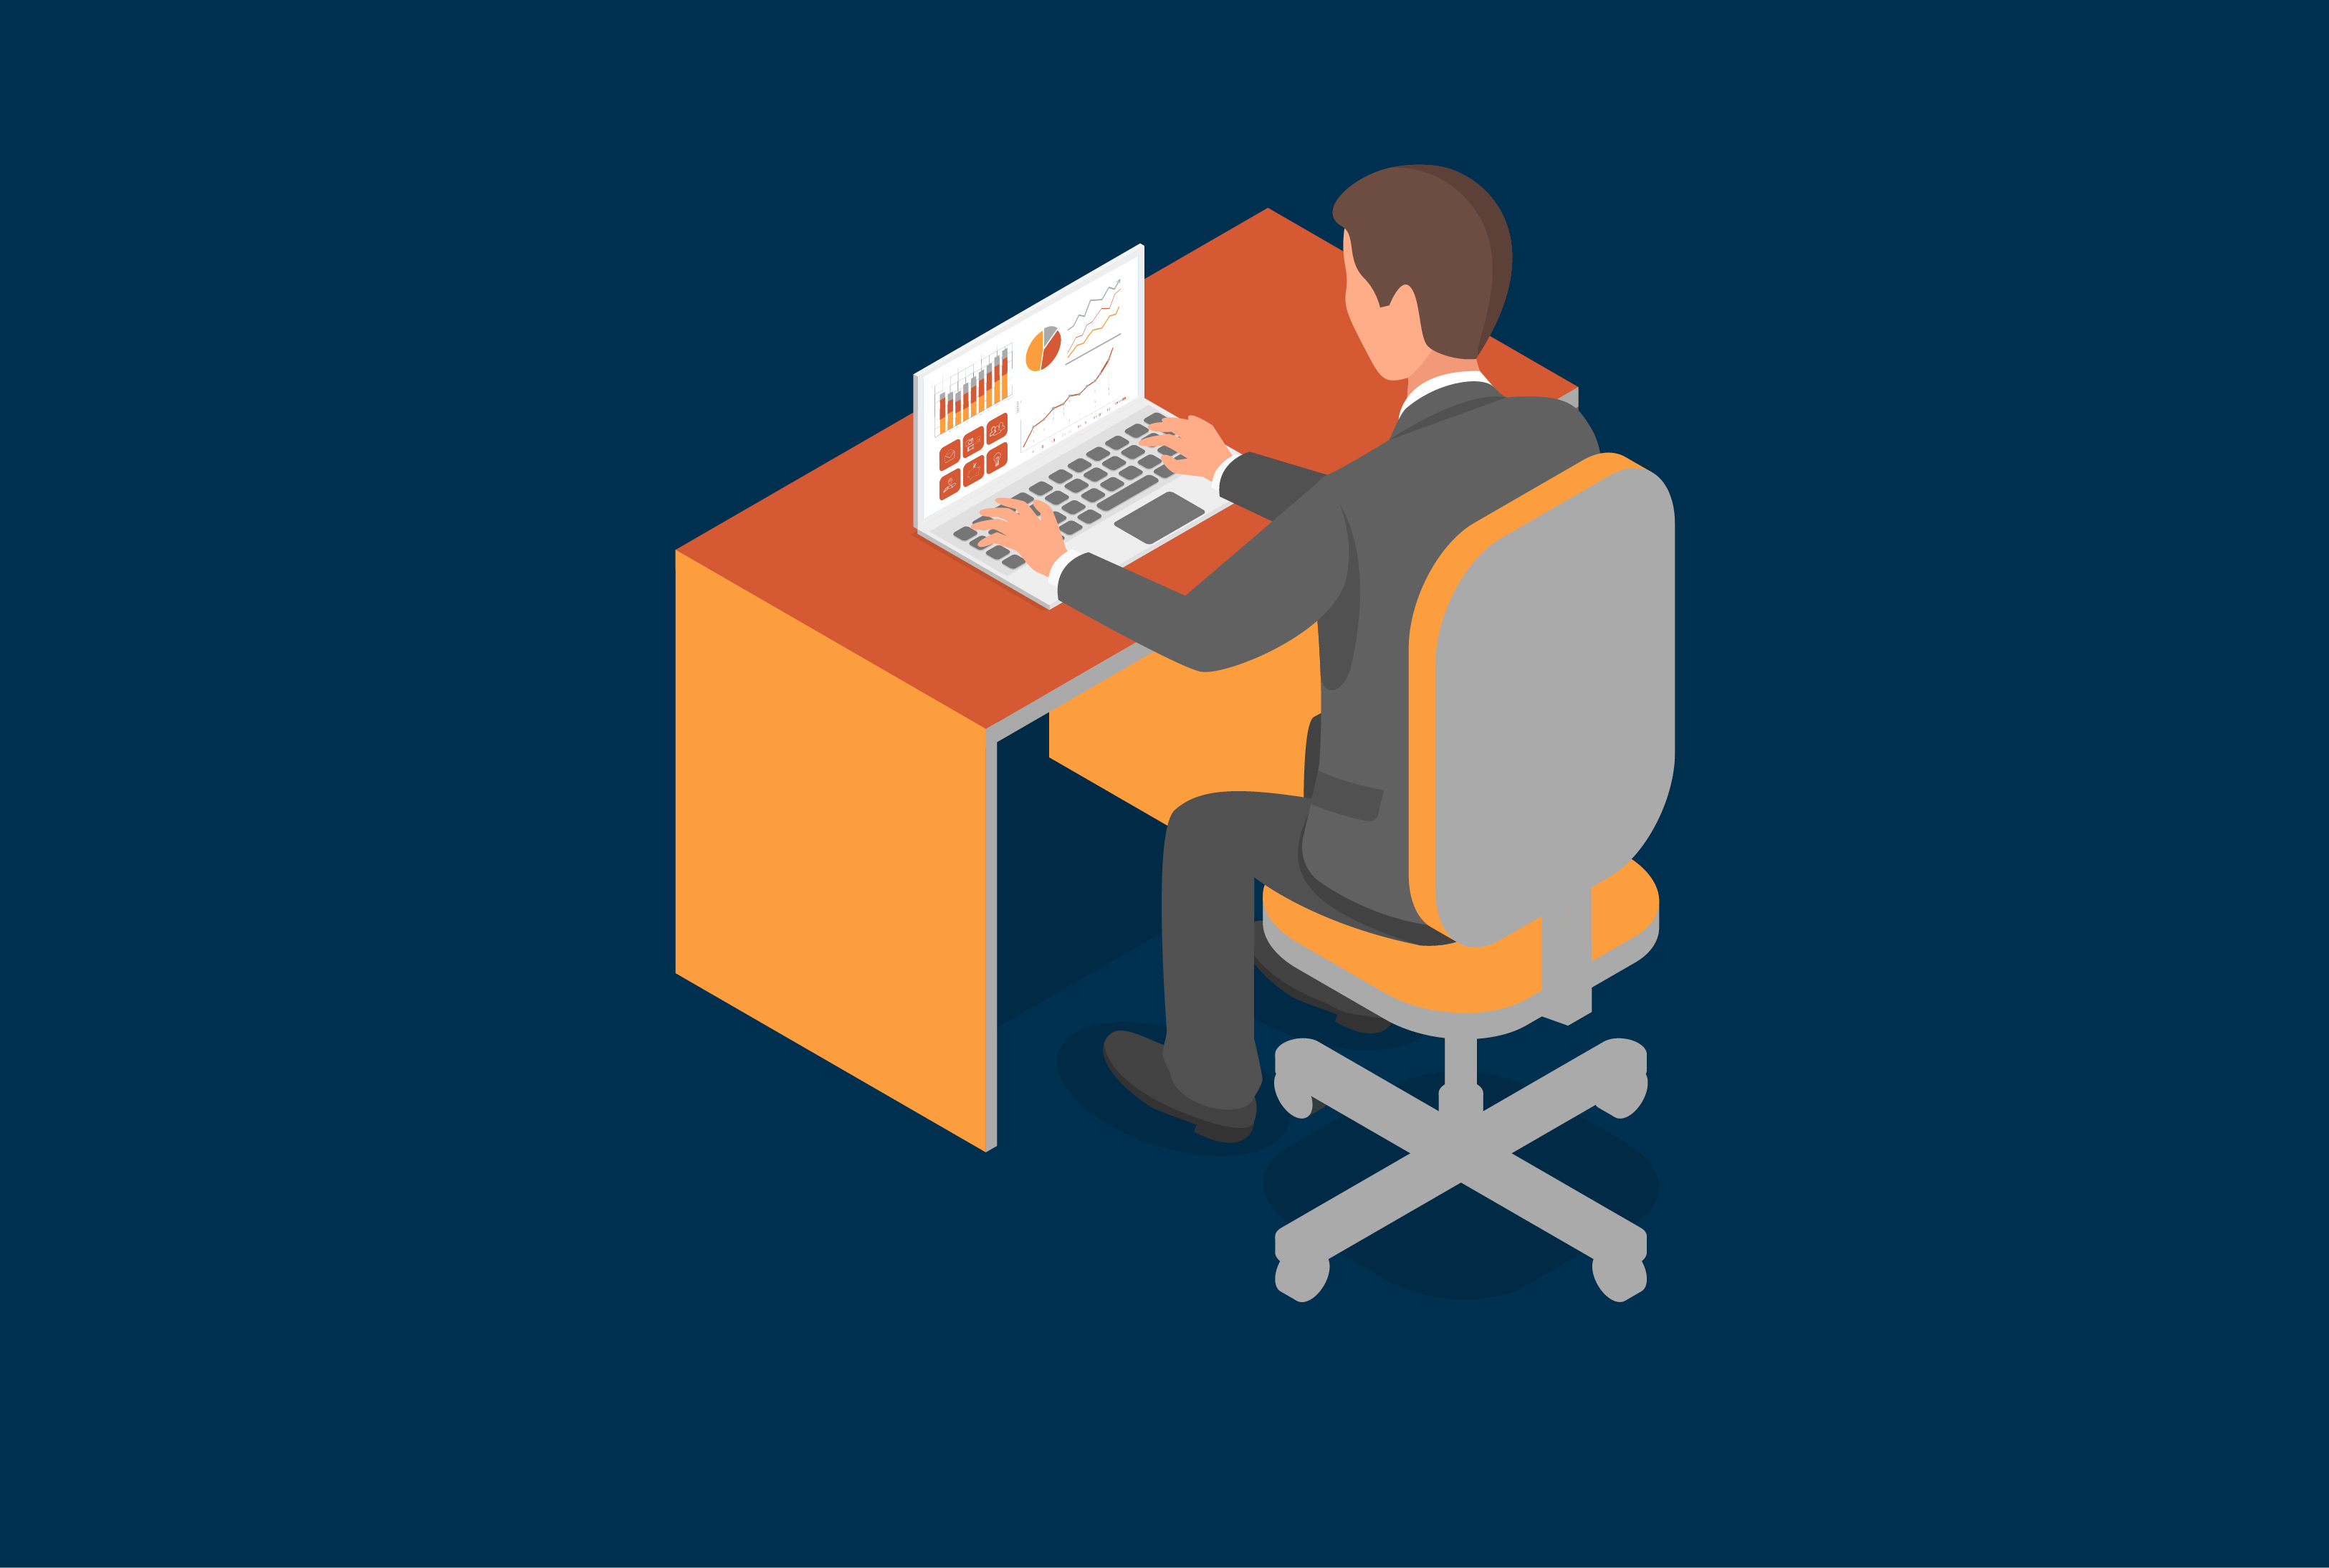 Illustration for EDF showing a man on his desk with a laptop